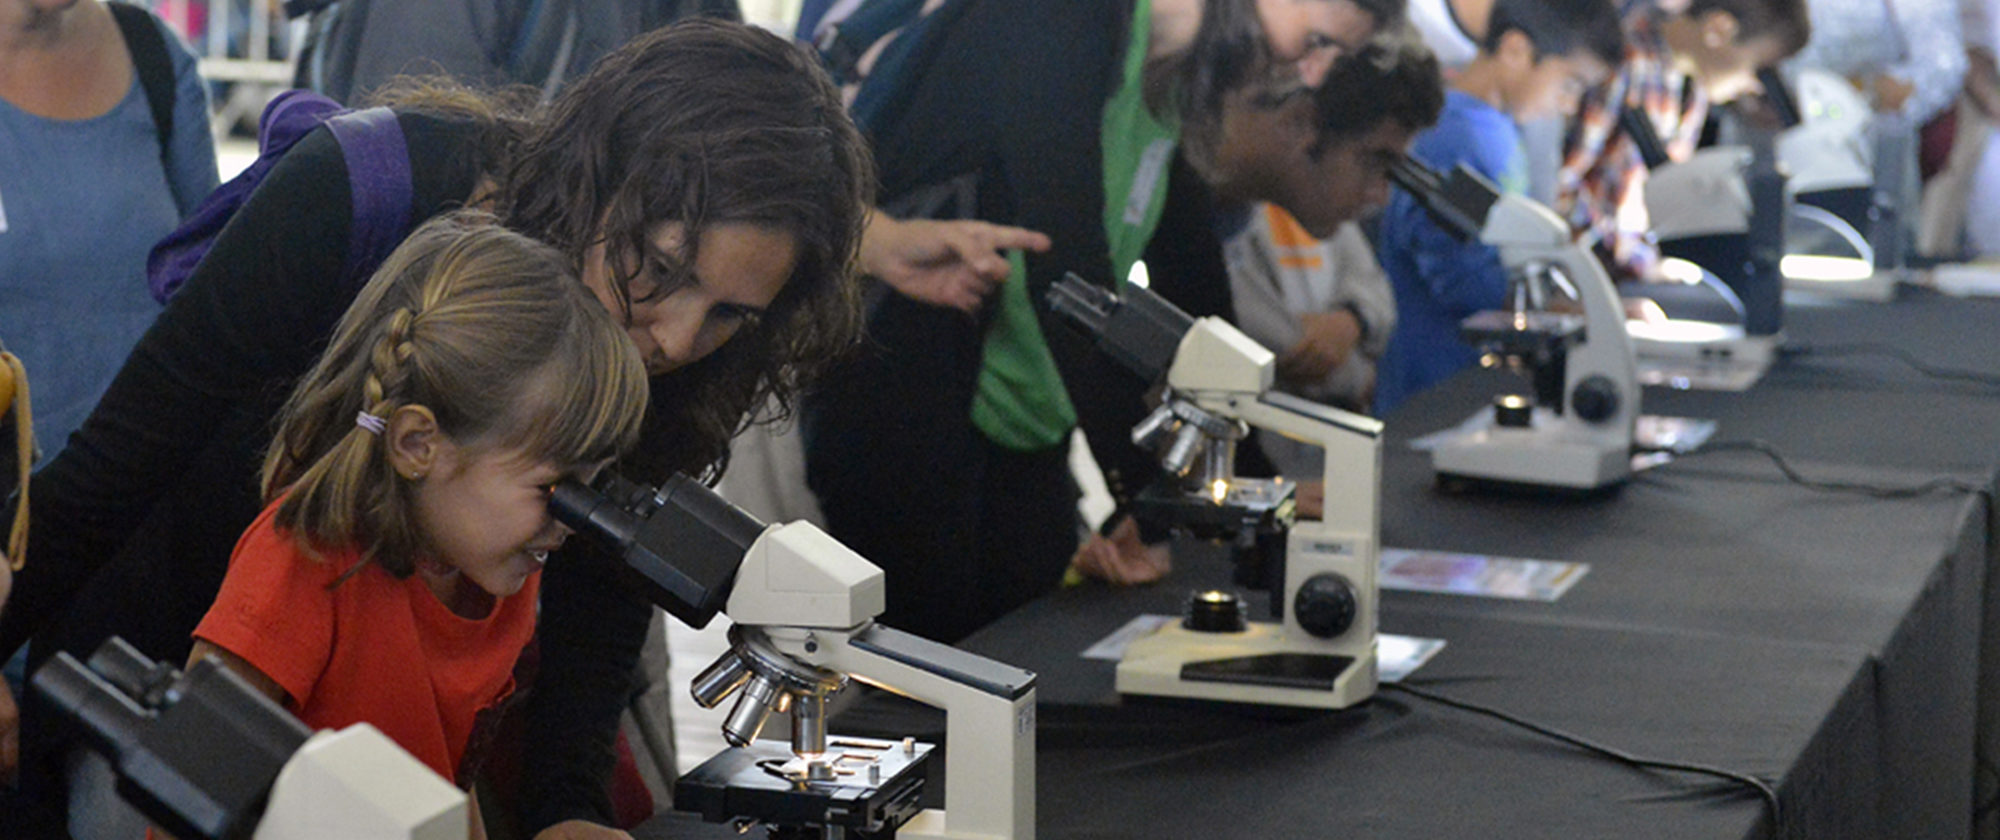 Microscopes, virtual reality, talks, experiments, guided tours... About 2000 people satisfied their scientific curiosity in the PRBB. © PRBB / Jordi Casañas.